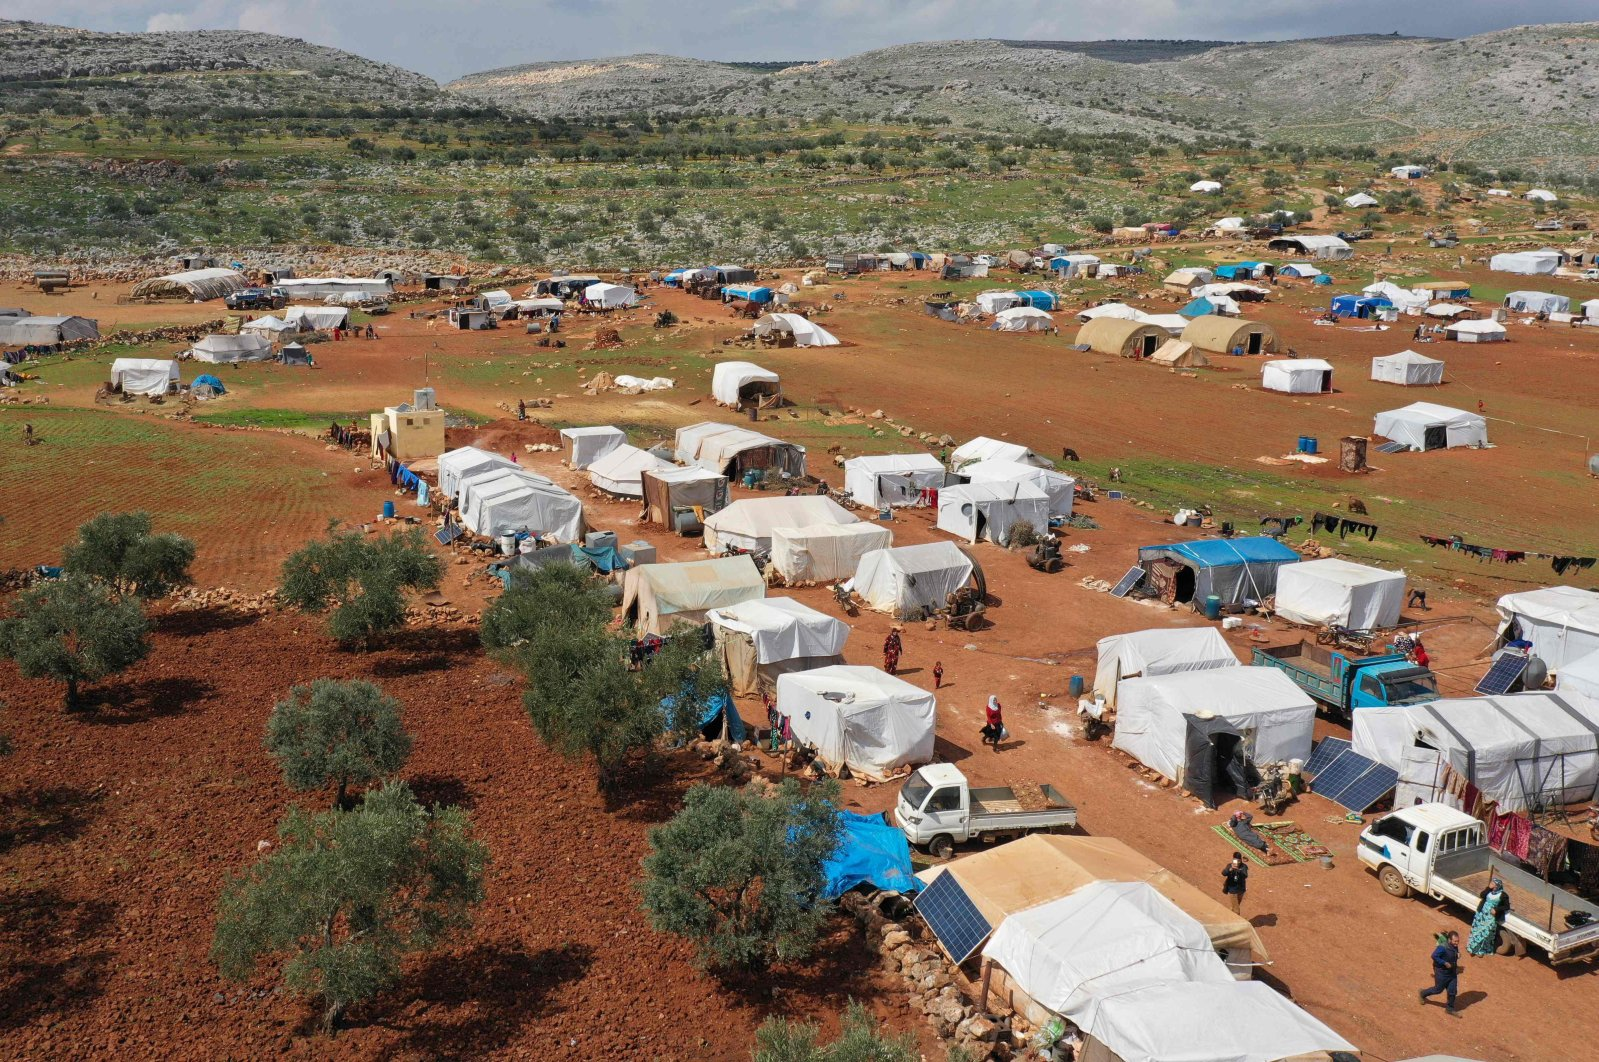 A drone image shows a displaced camp in the town of Kafr Uruq southwest of the town of Sarmada in Syria's northwestern Idlib province, Tuesday, March 17, 2020. (AFP Photo)